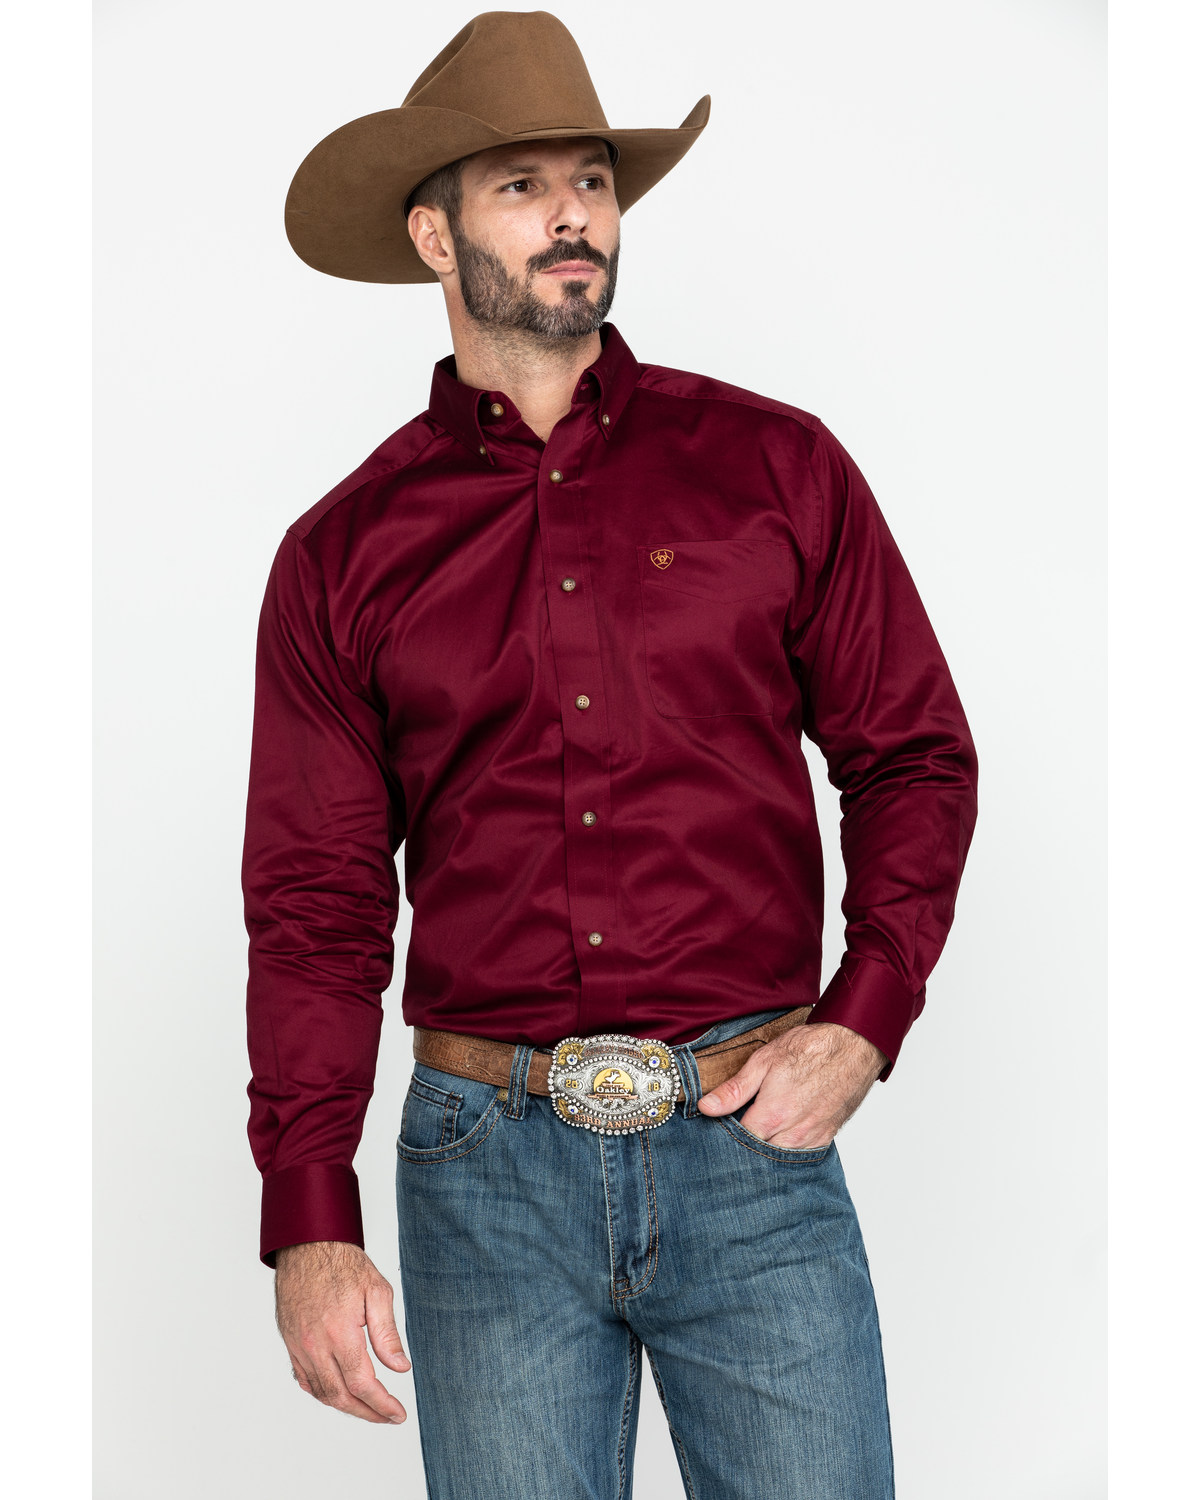 0341fc1b Zoomed Image Ariat Men's Solid Twill Long Sleeve Western Shirt, Burgundy,  hi-res